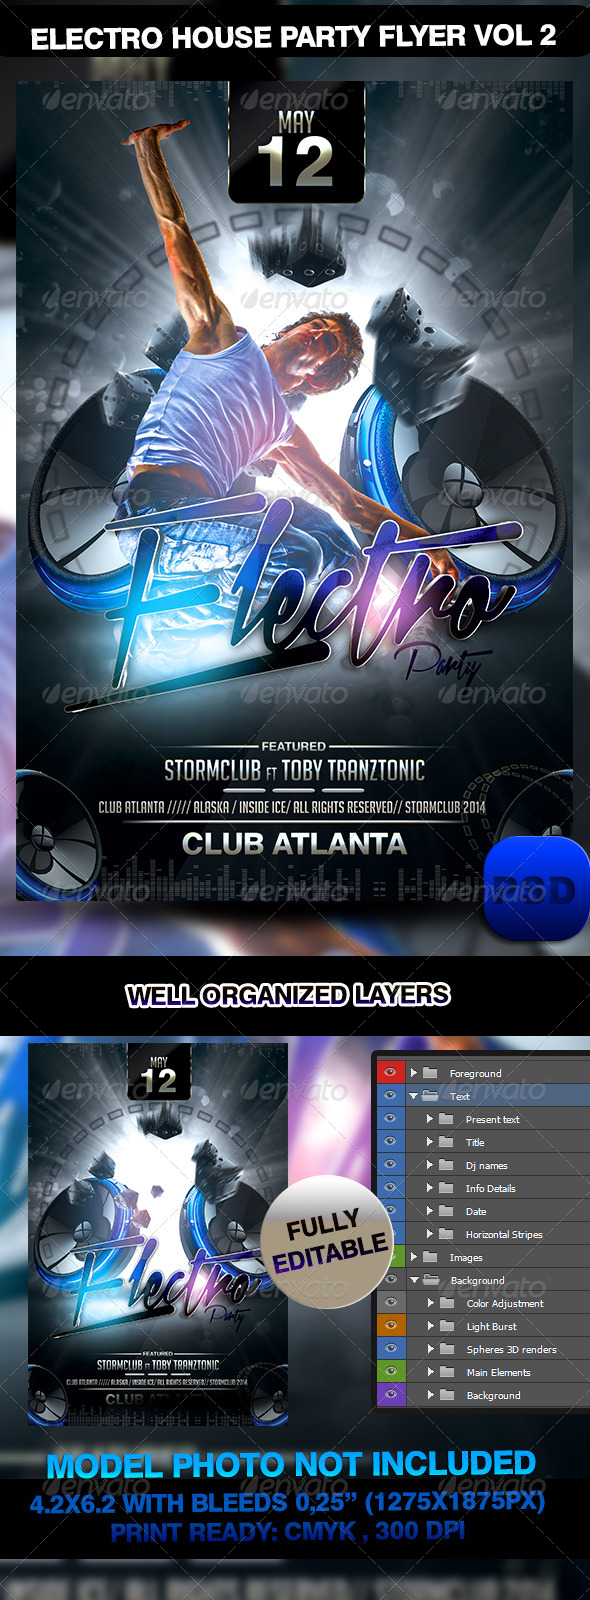 Electro House Party Flyer Vol 2 - Events Flyers